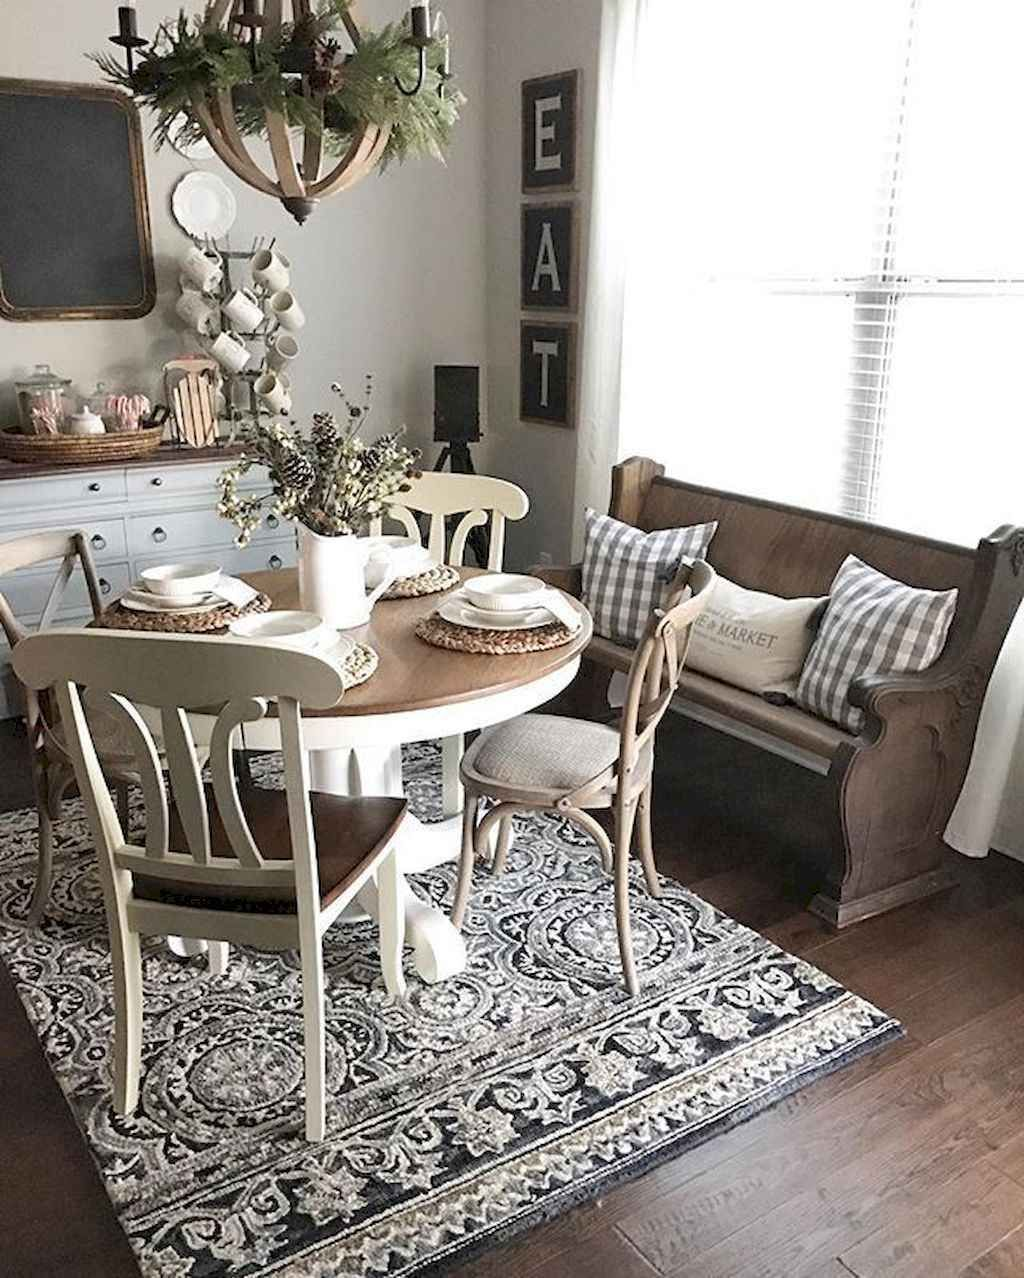 Casual Dining Rooms Decorating Ideas For A Soothing Interior: 70 Rustic Farmhouse Living Room Decor Ideas And Makeover